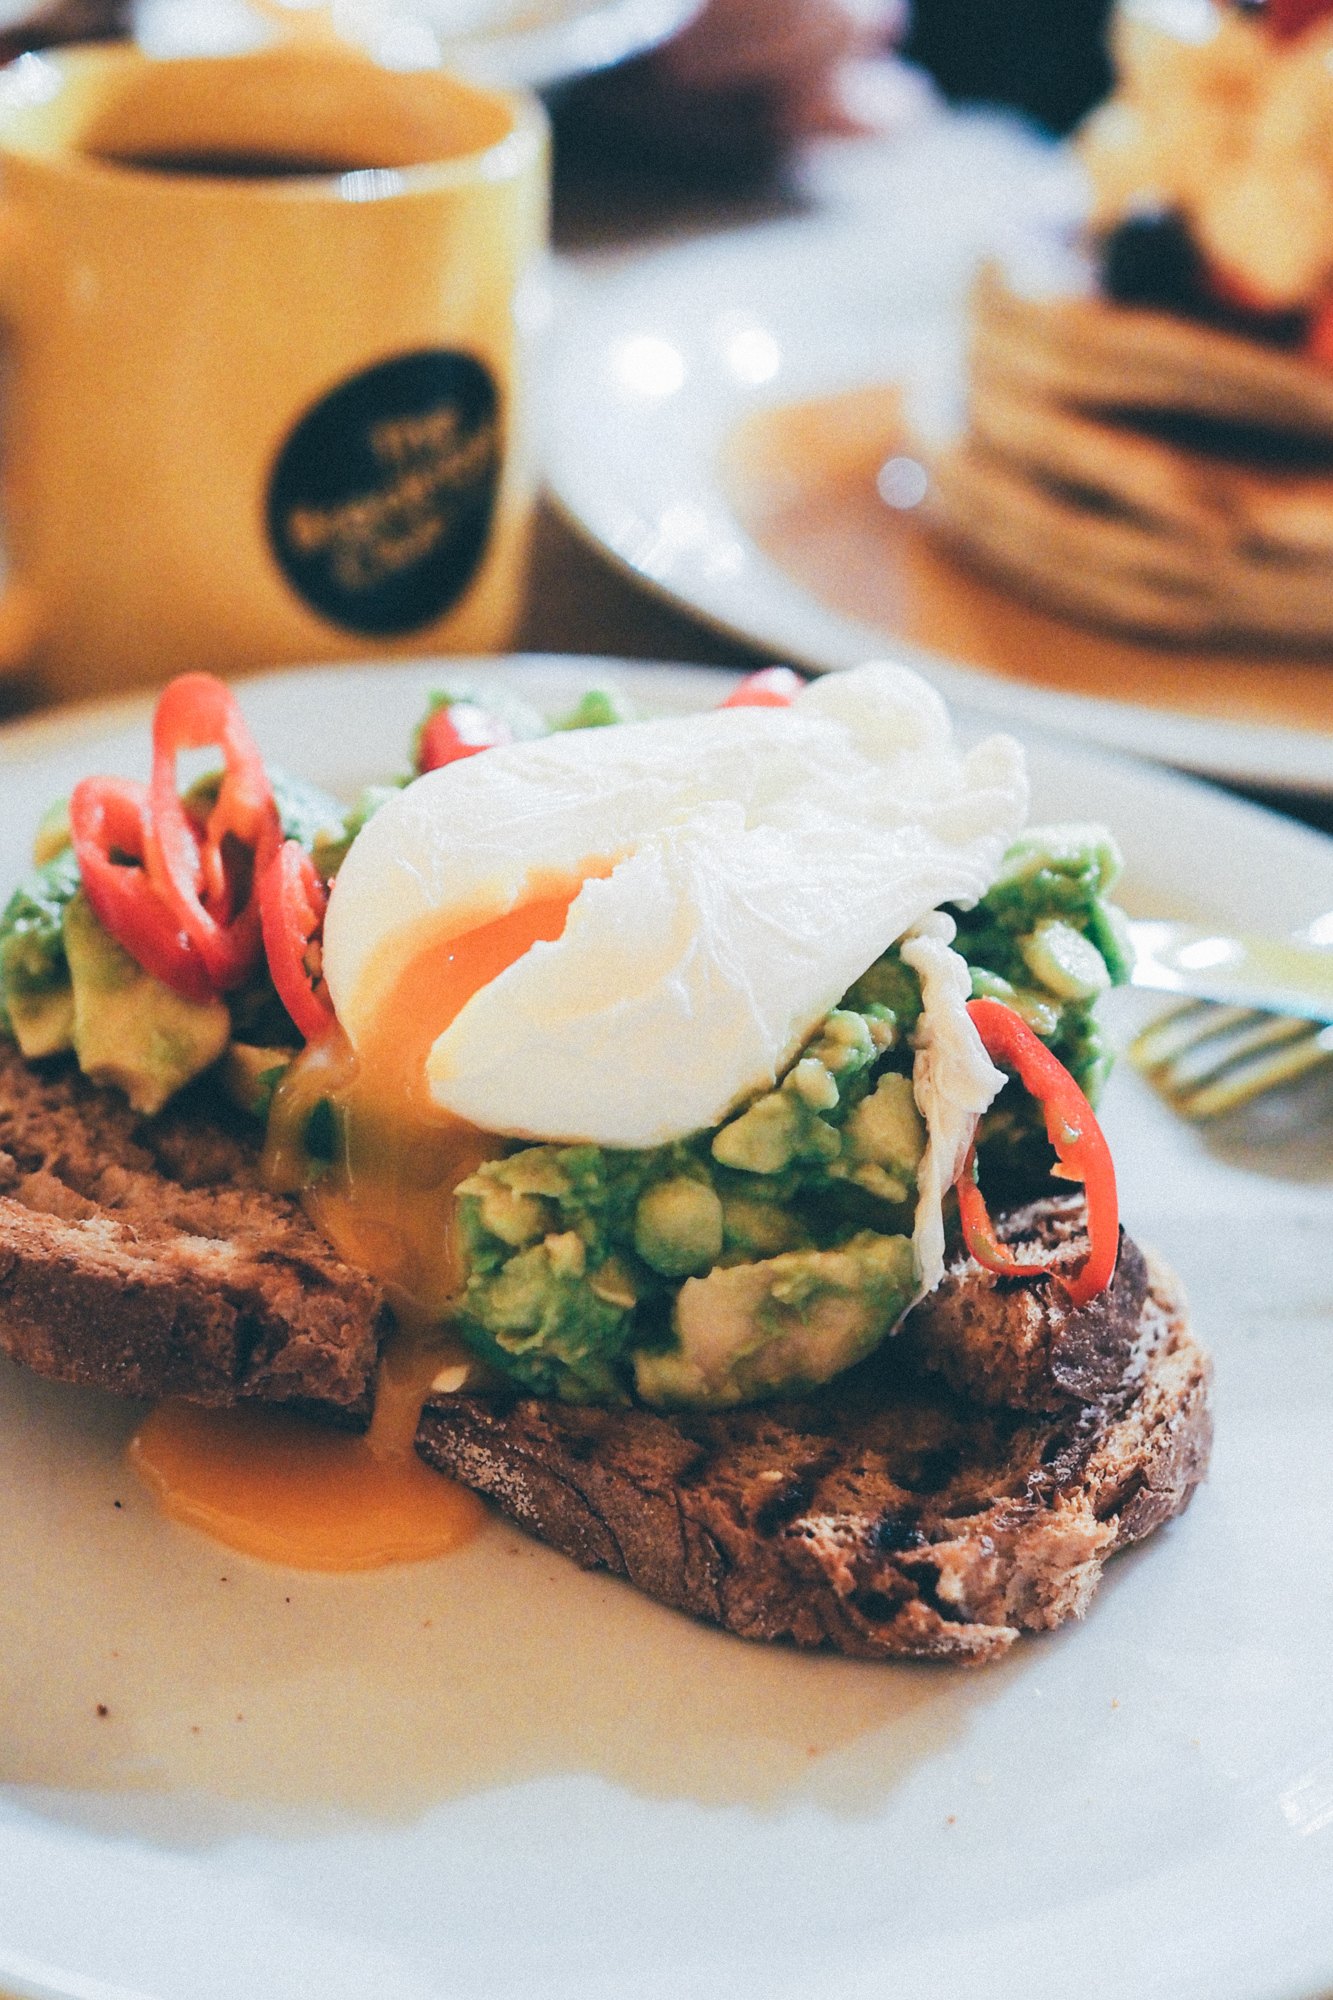 The Breakfast Club - Soho, London / Tippy.fr